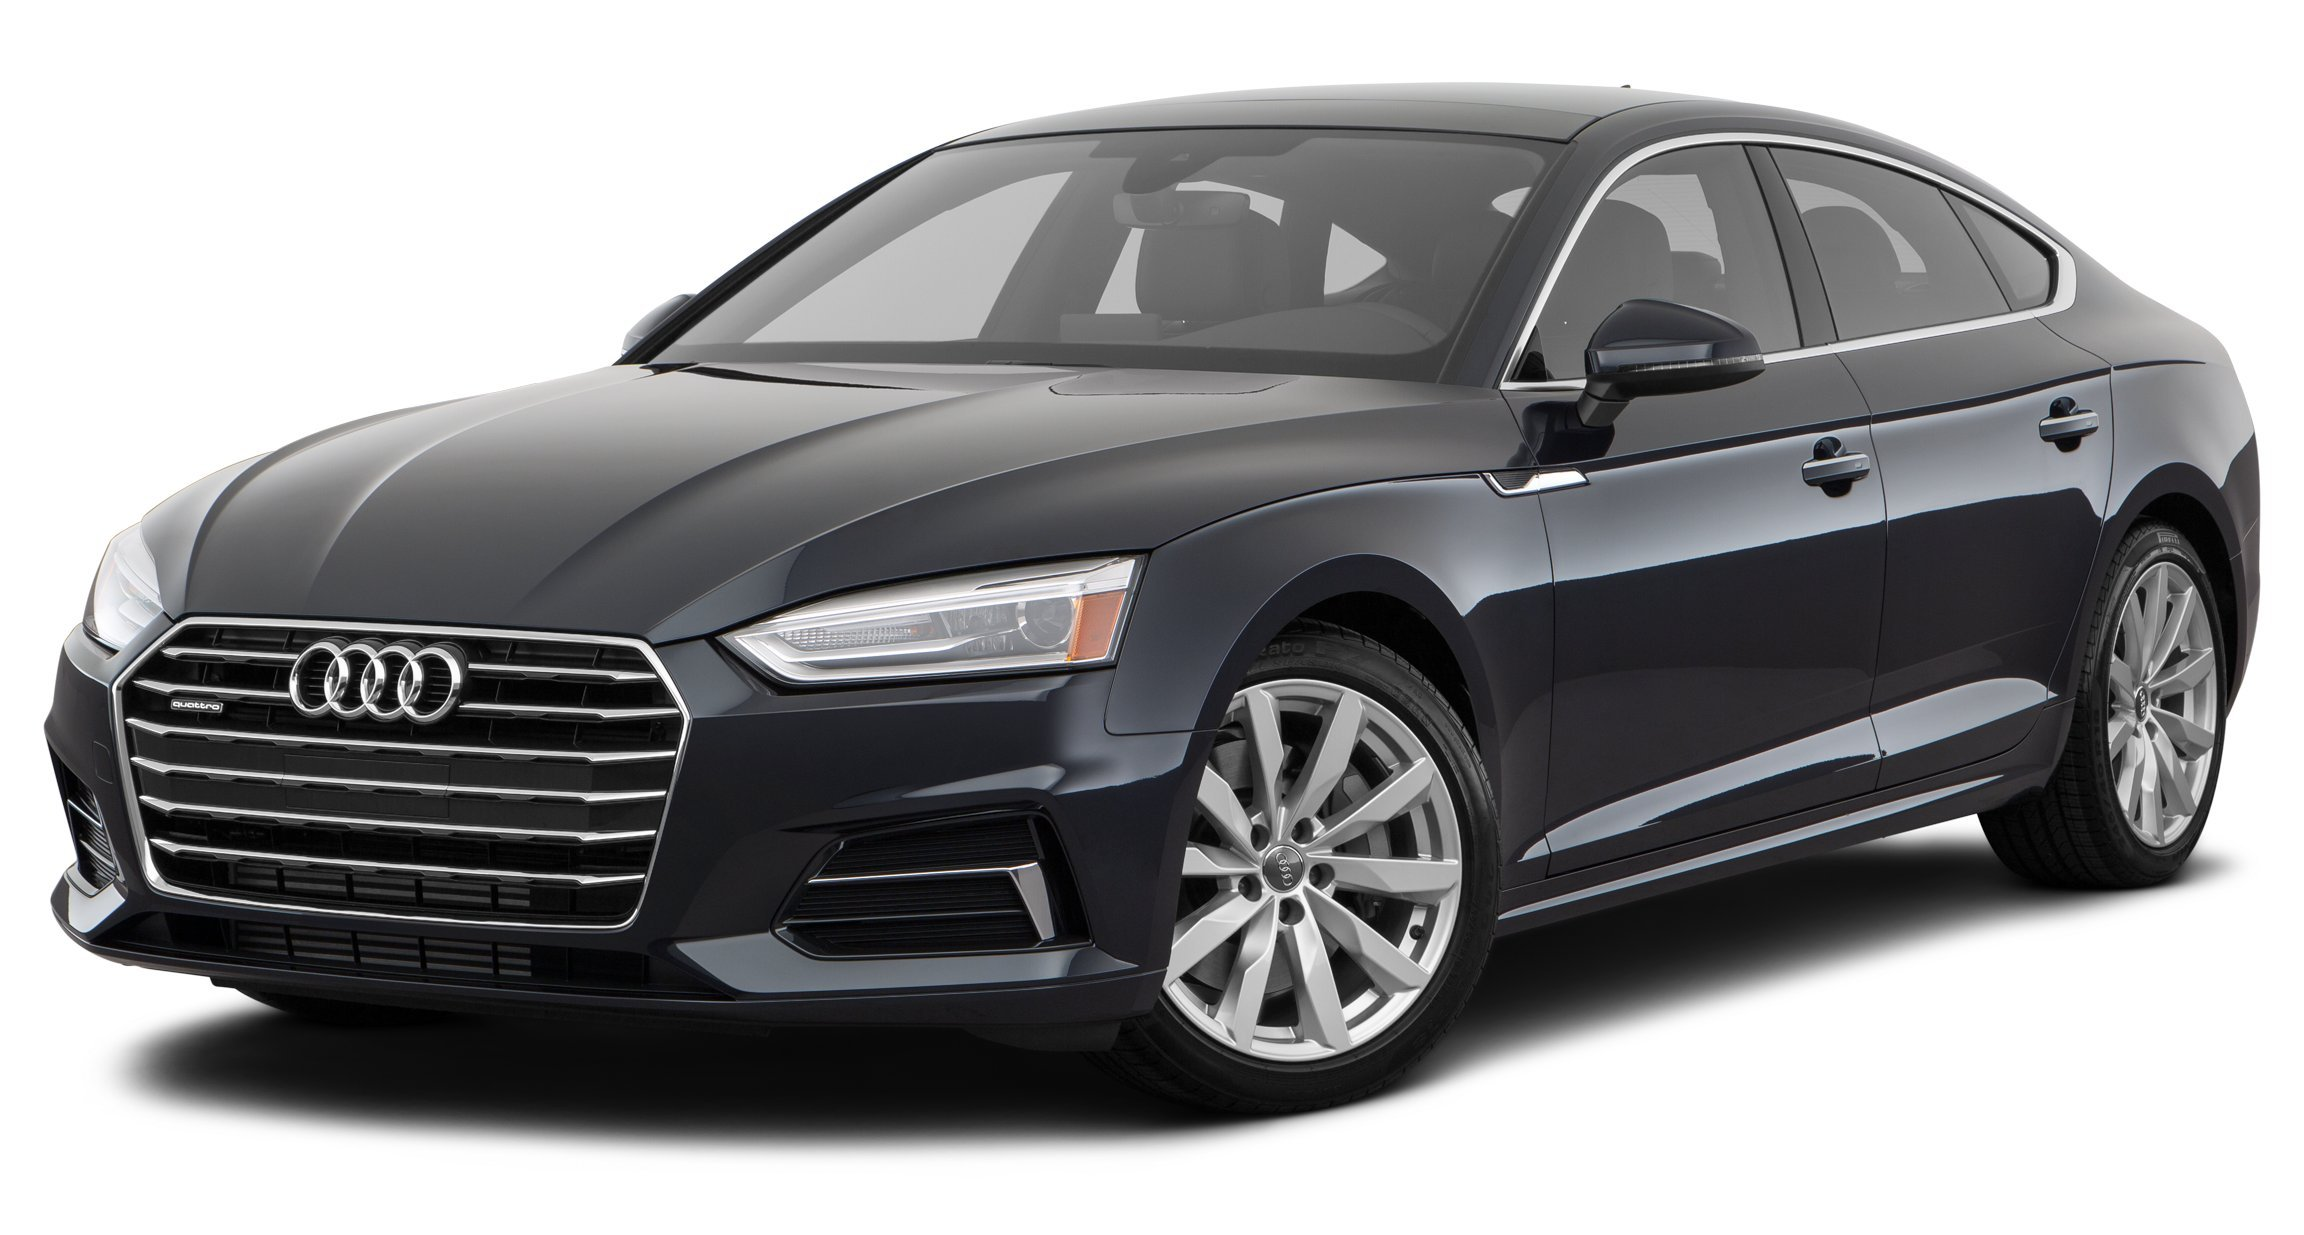 Amazon 2018 Audi A5 Sportback Reviews and Specs Vehicles